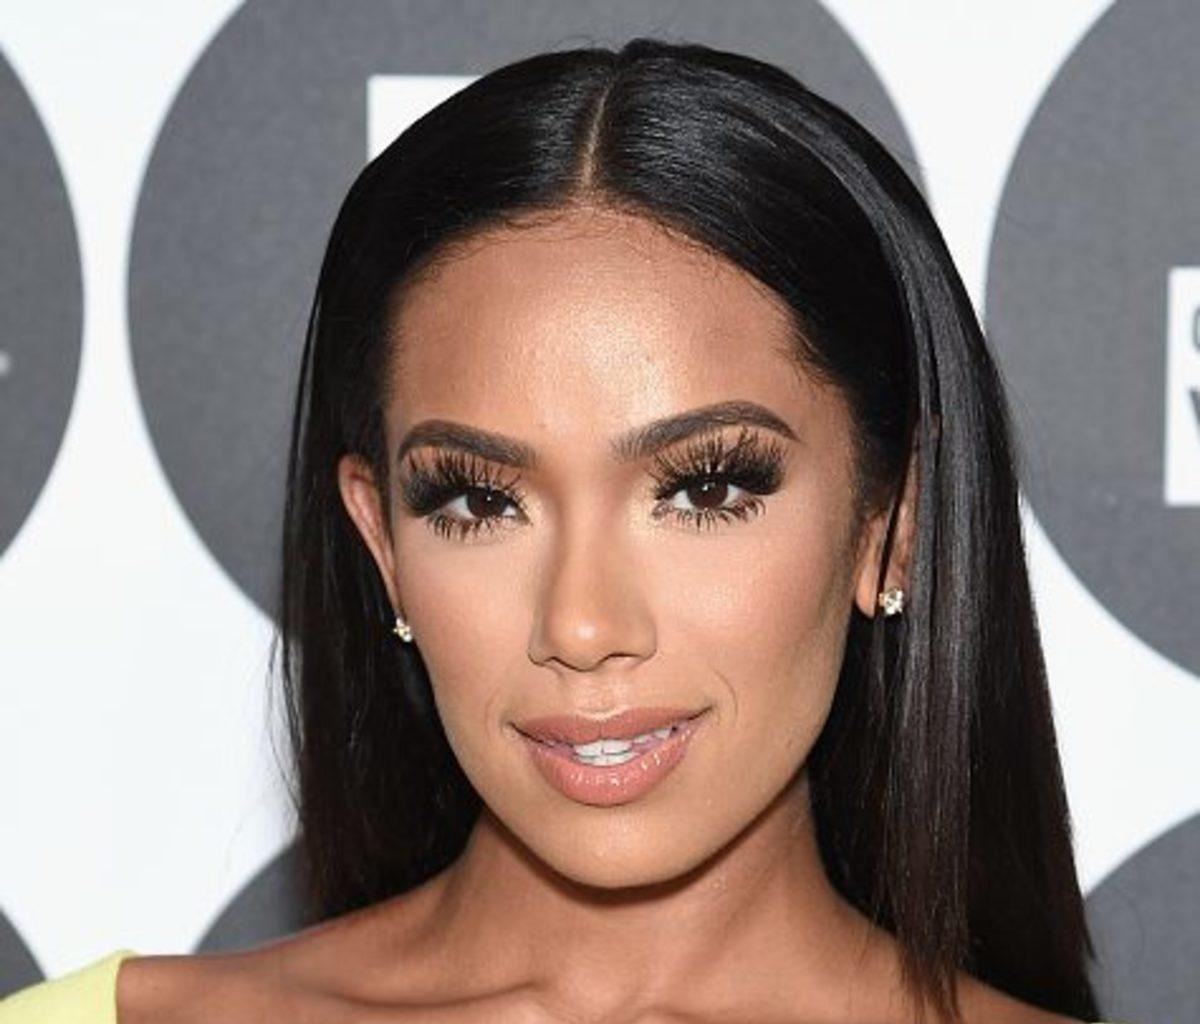 Erica Mena Is Staying Fit - The Aftermath Of A Happy And Healthy Pregnancy